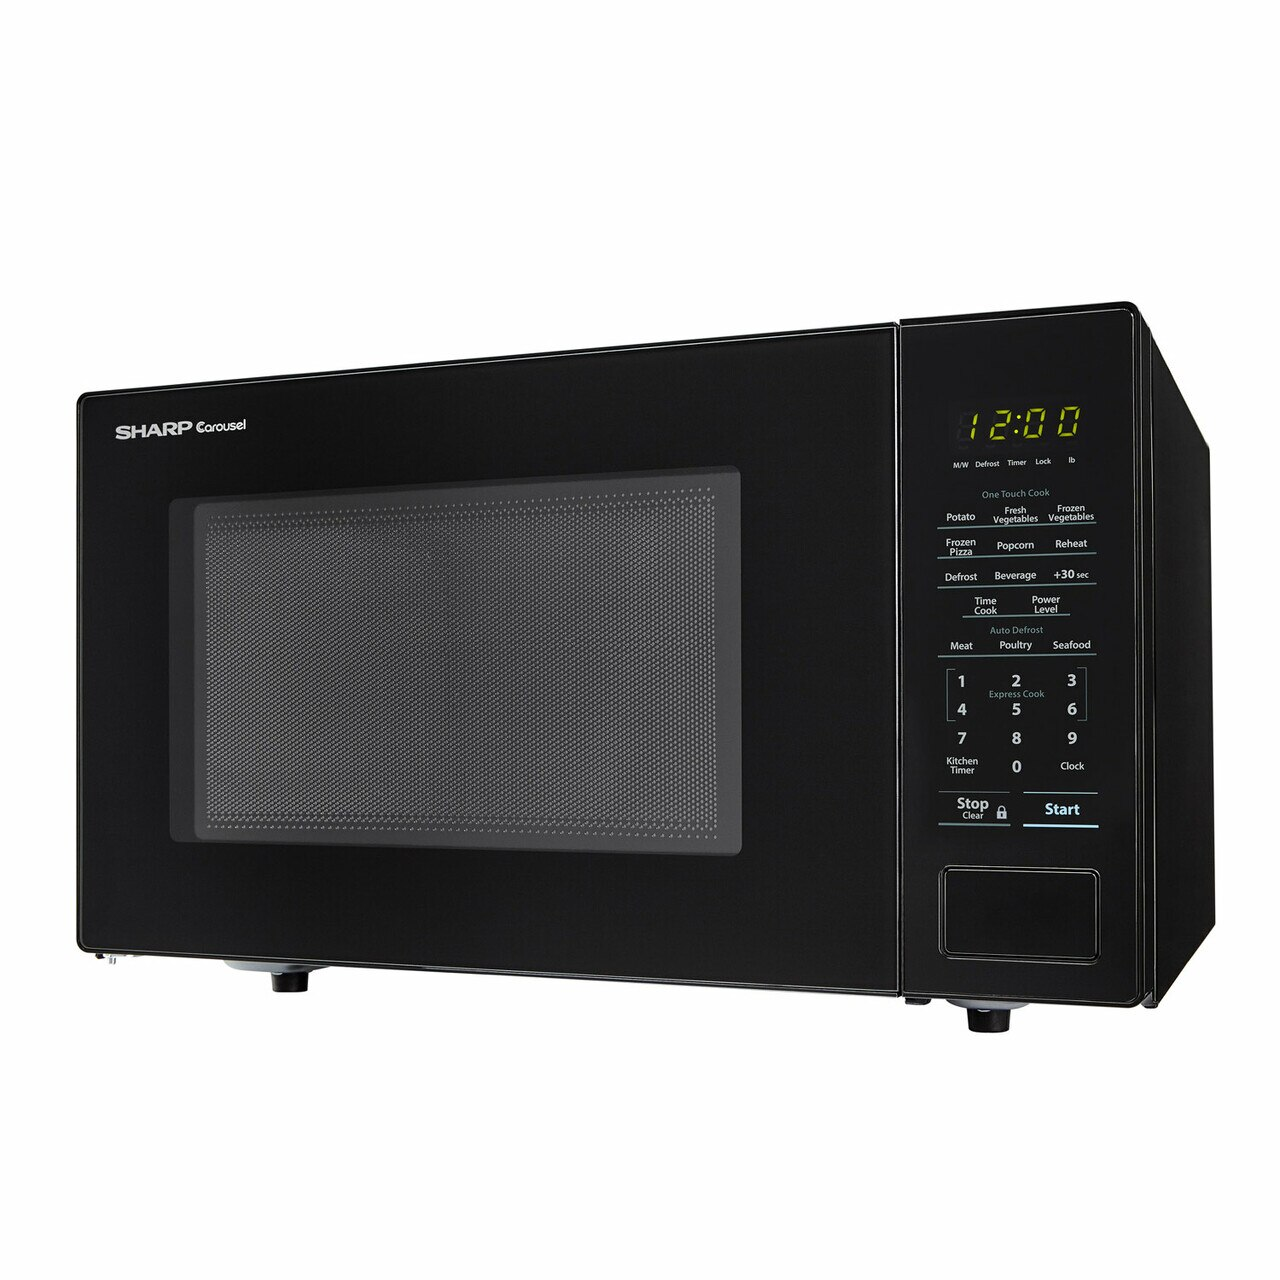 Sharp 1.1 cu. ft. Black Countertop Microwave (SMC1131CB) – left side view